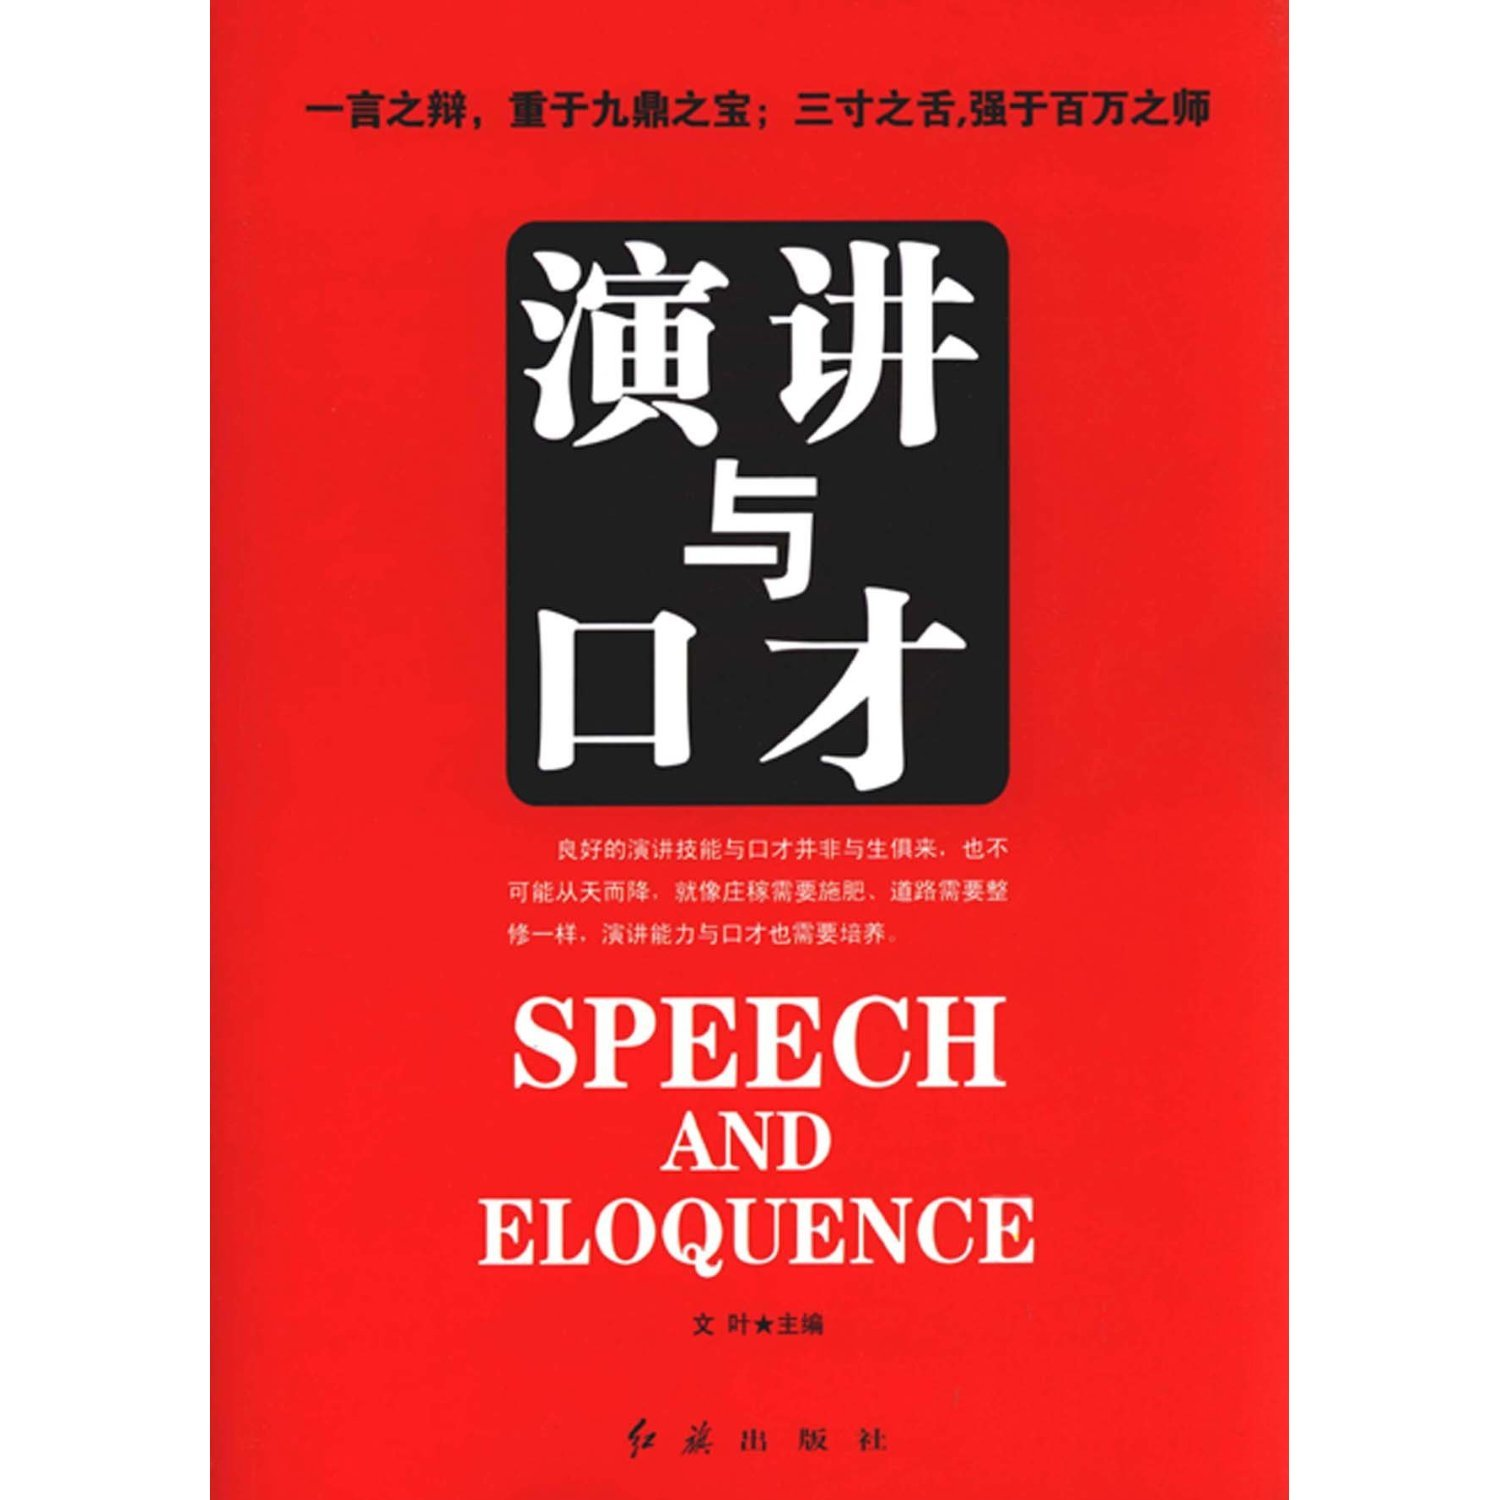 Speech and Eloquence (Chinese Edition) PDF